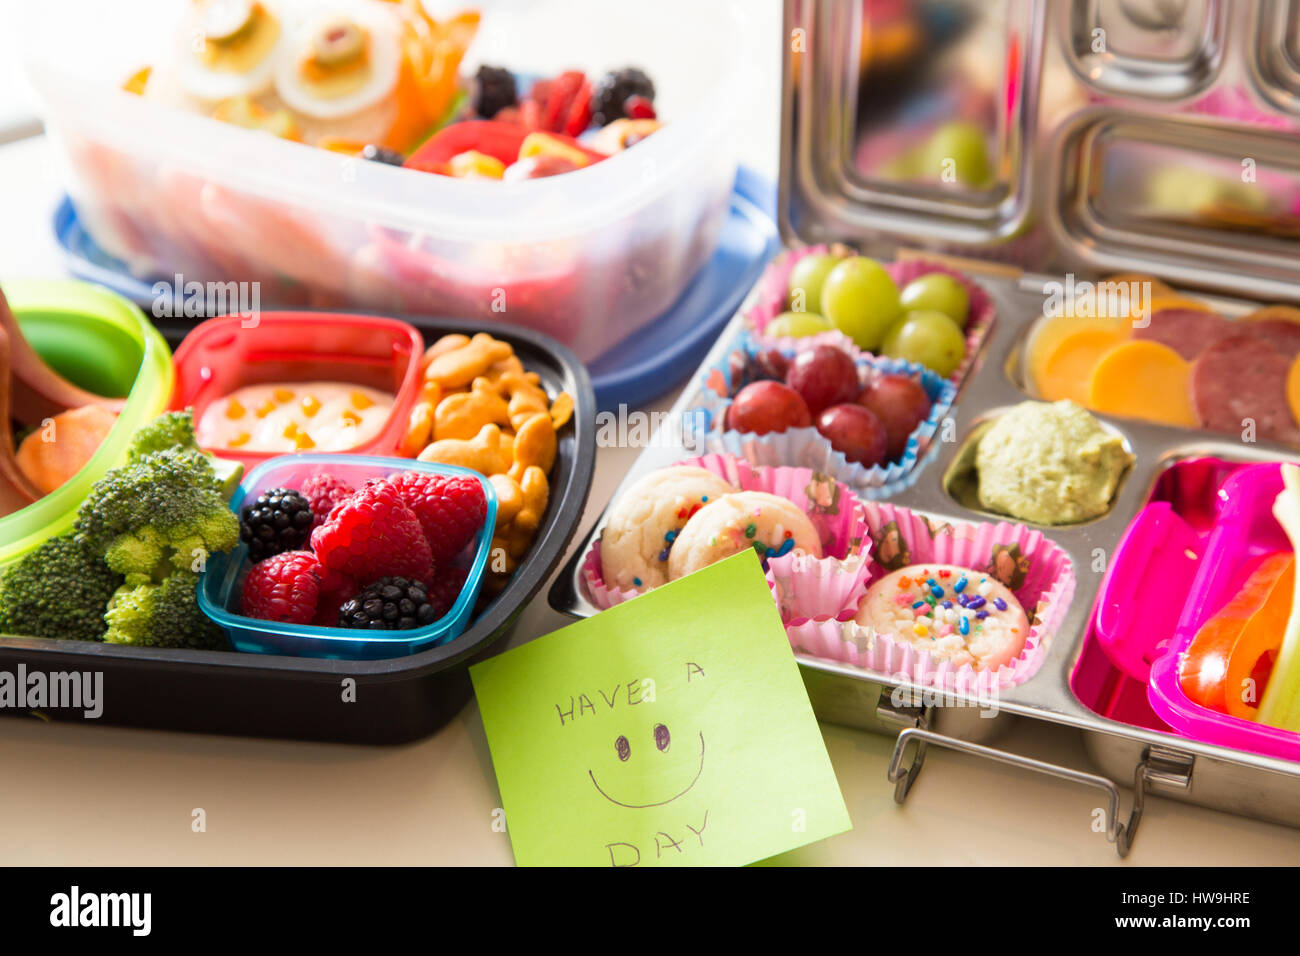 Mom packs a happy note of encouragement with a colorful Bento box lunch packed with healthy fruits, veggies and - Stock Image